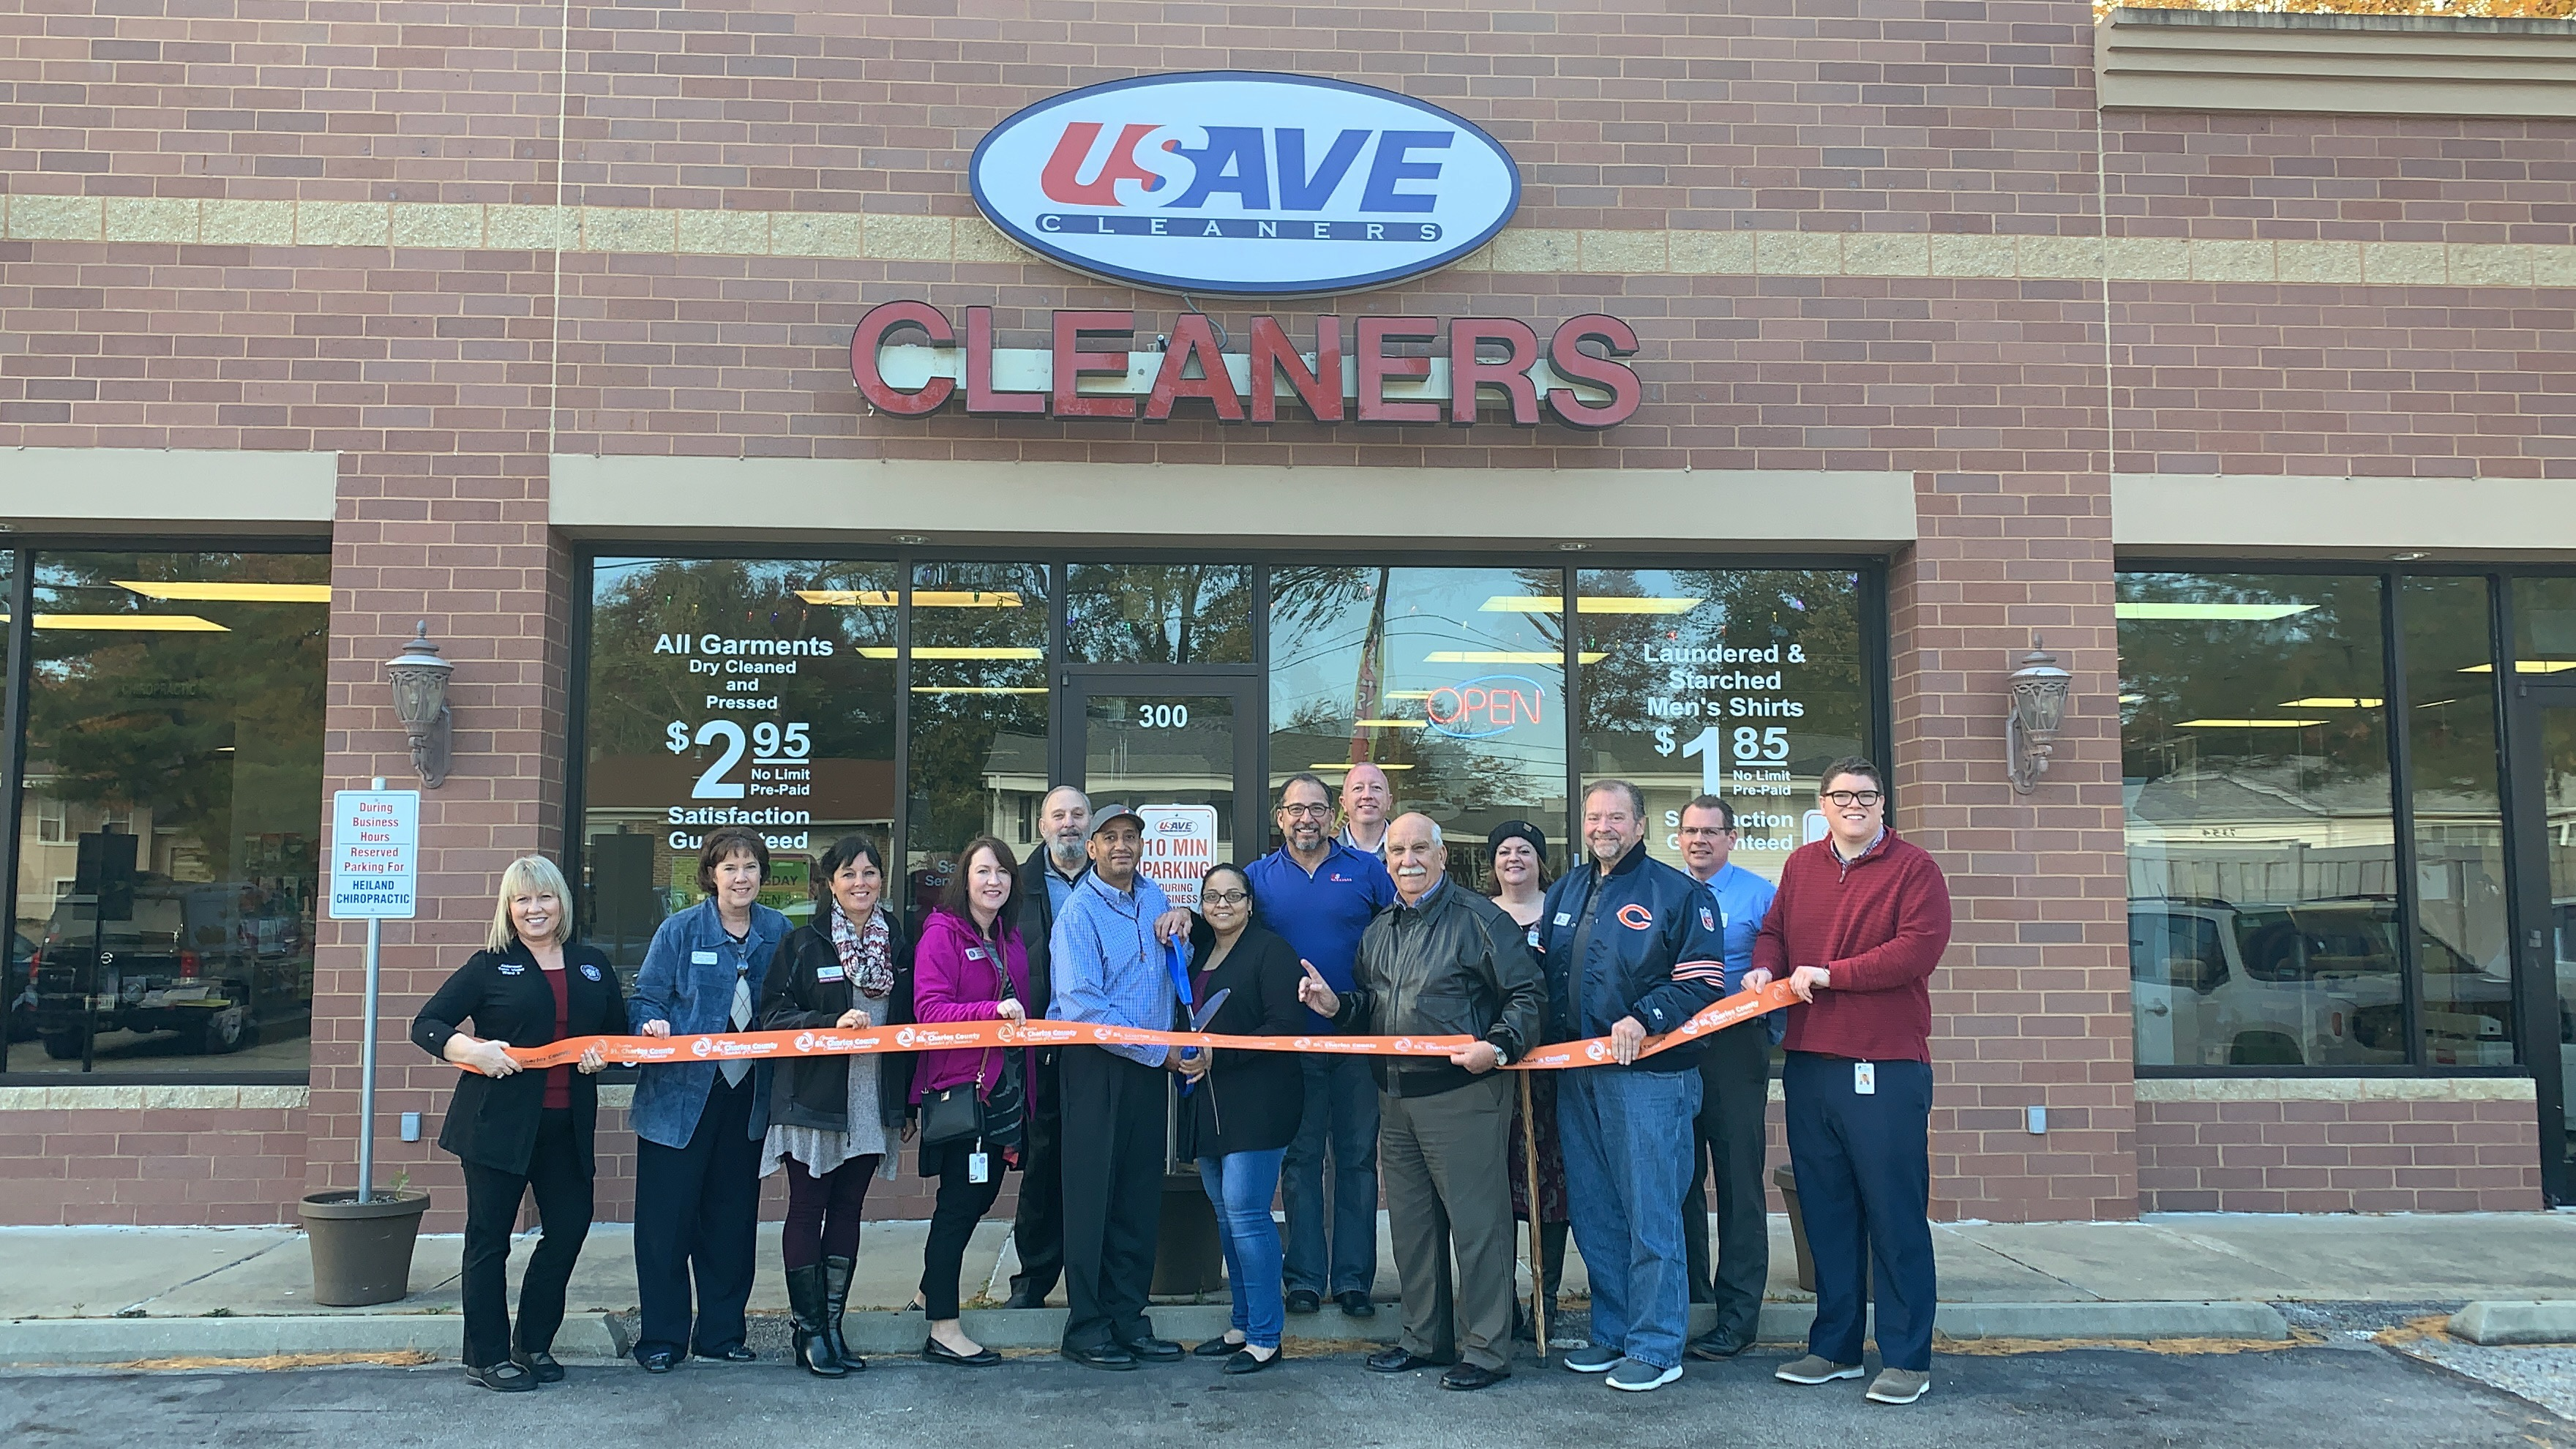 USave Cleaners Celebrates  Grand Opening with Ribbon Cutting